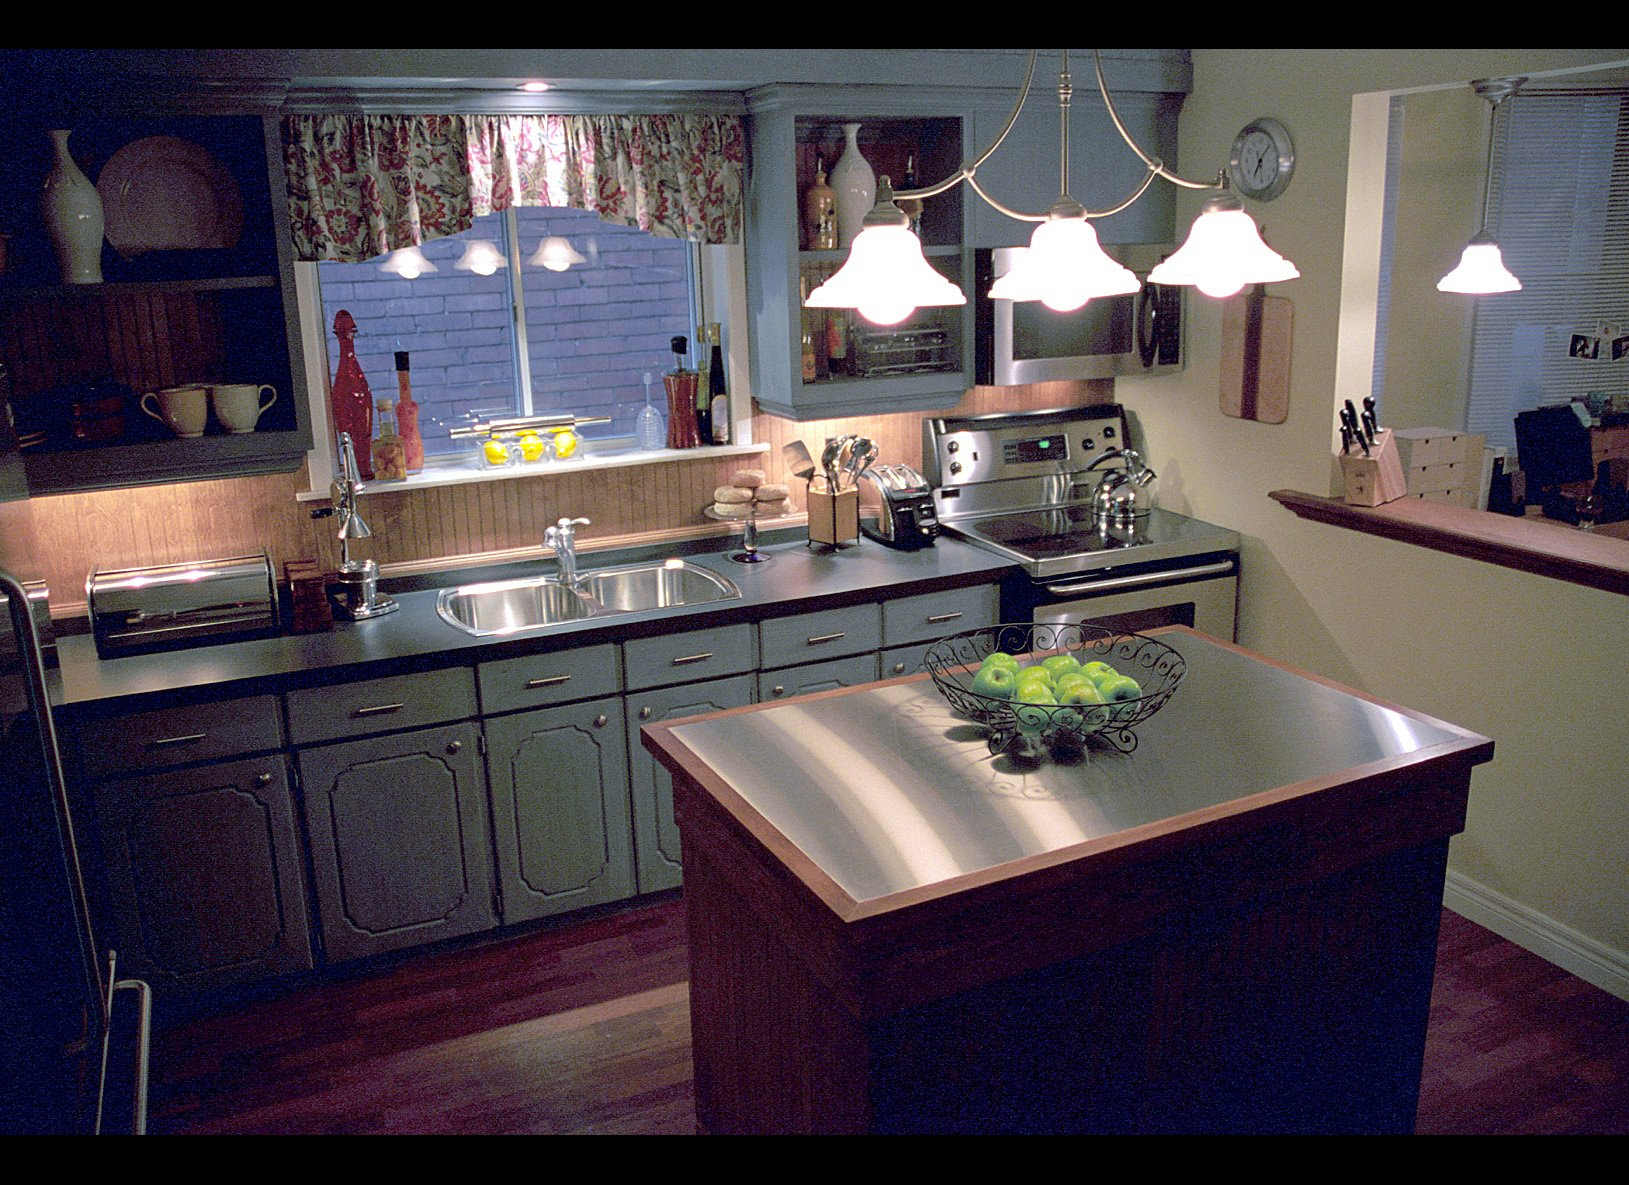 Candice Olson: Joyce and Andrew's Kitchen